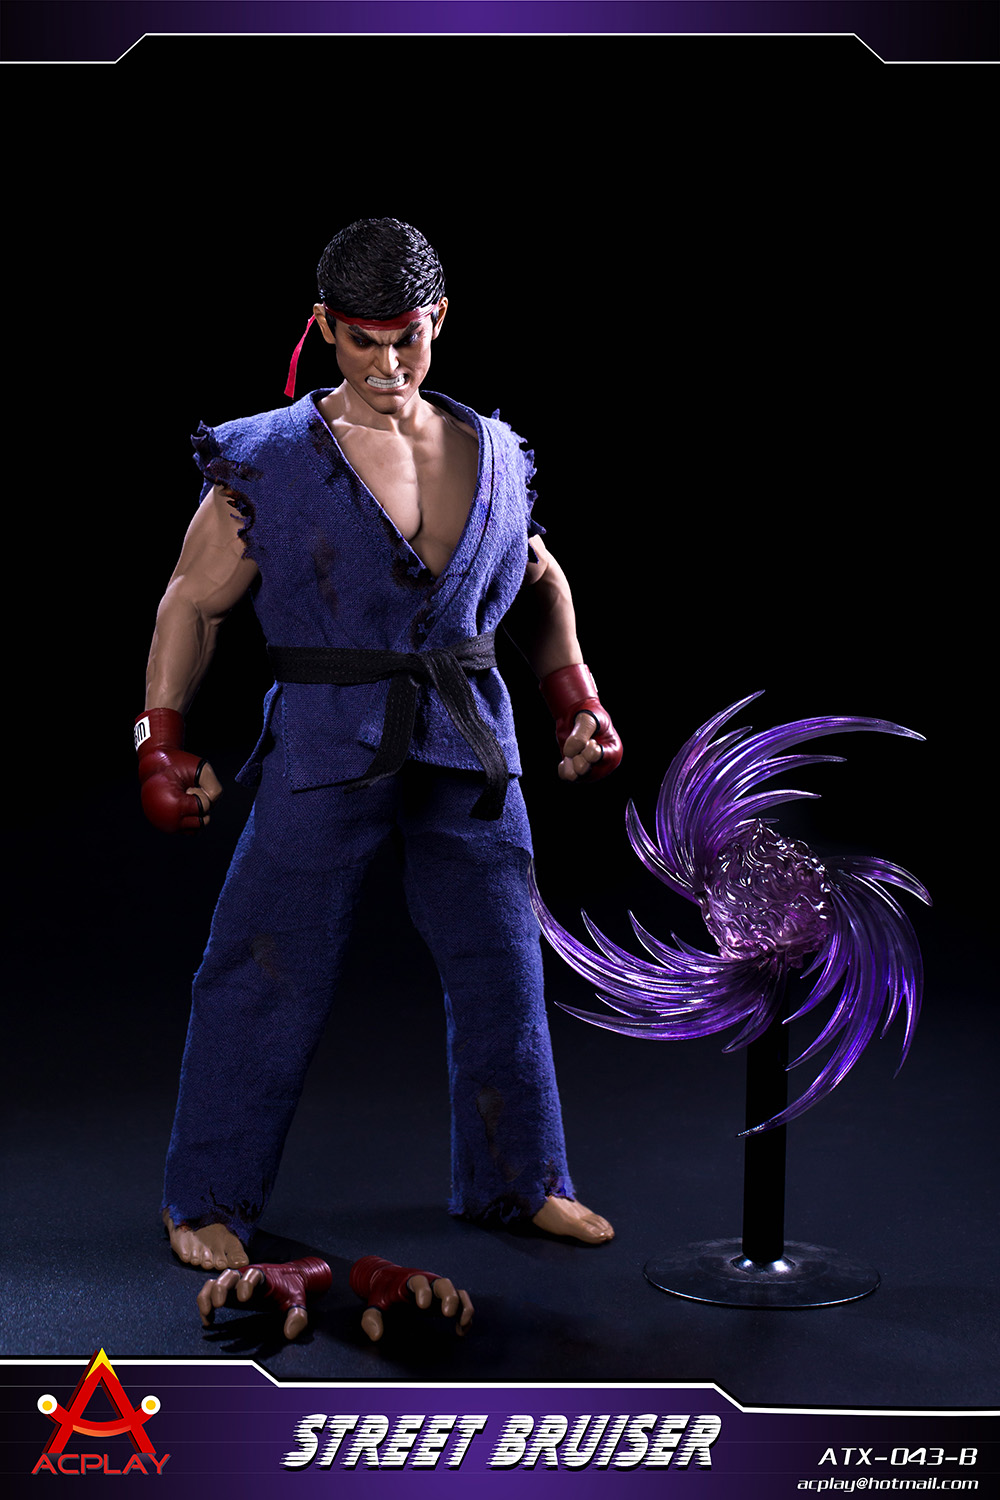 NEW PRODUCT: ACPLAY new products: 1/6 ATX043 Street Fighters practice martial arts A/B suit 11351110